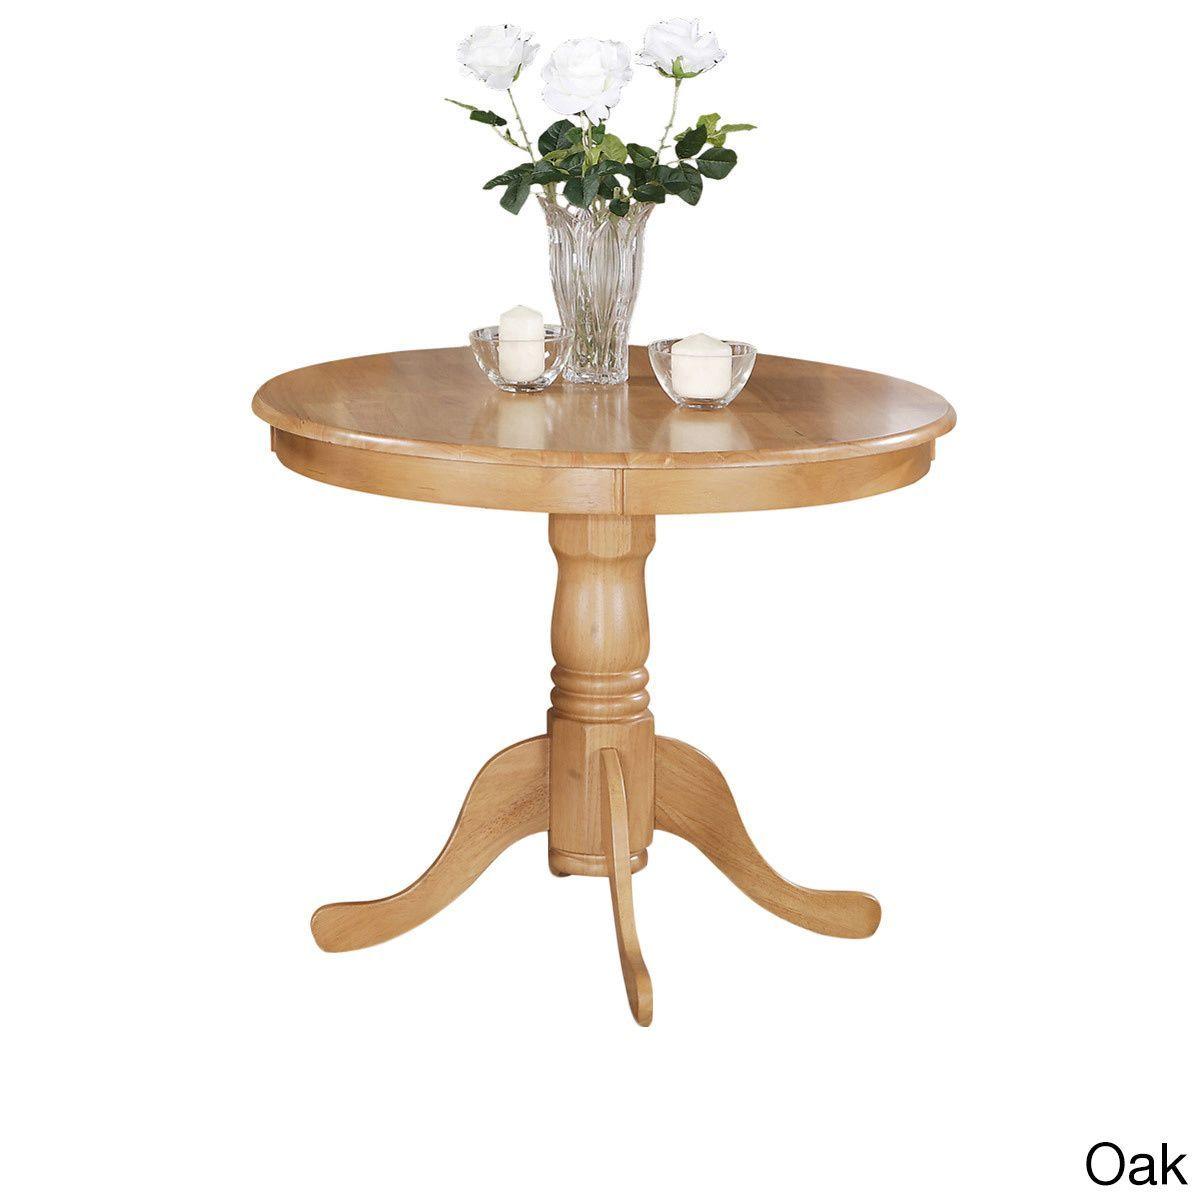 Wood 36-inch Round Antique Table